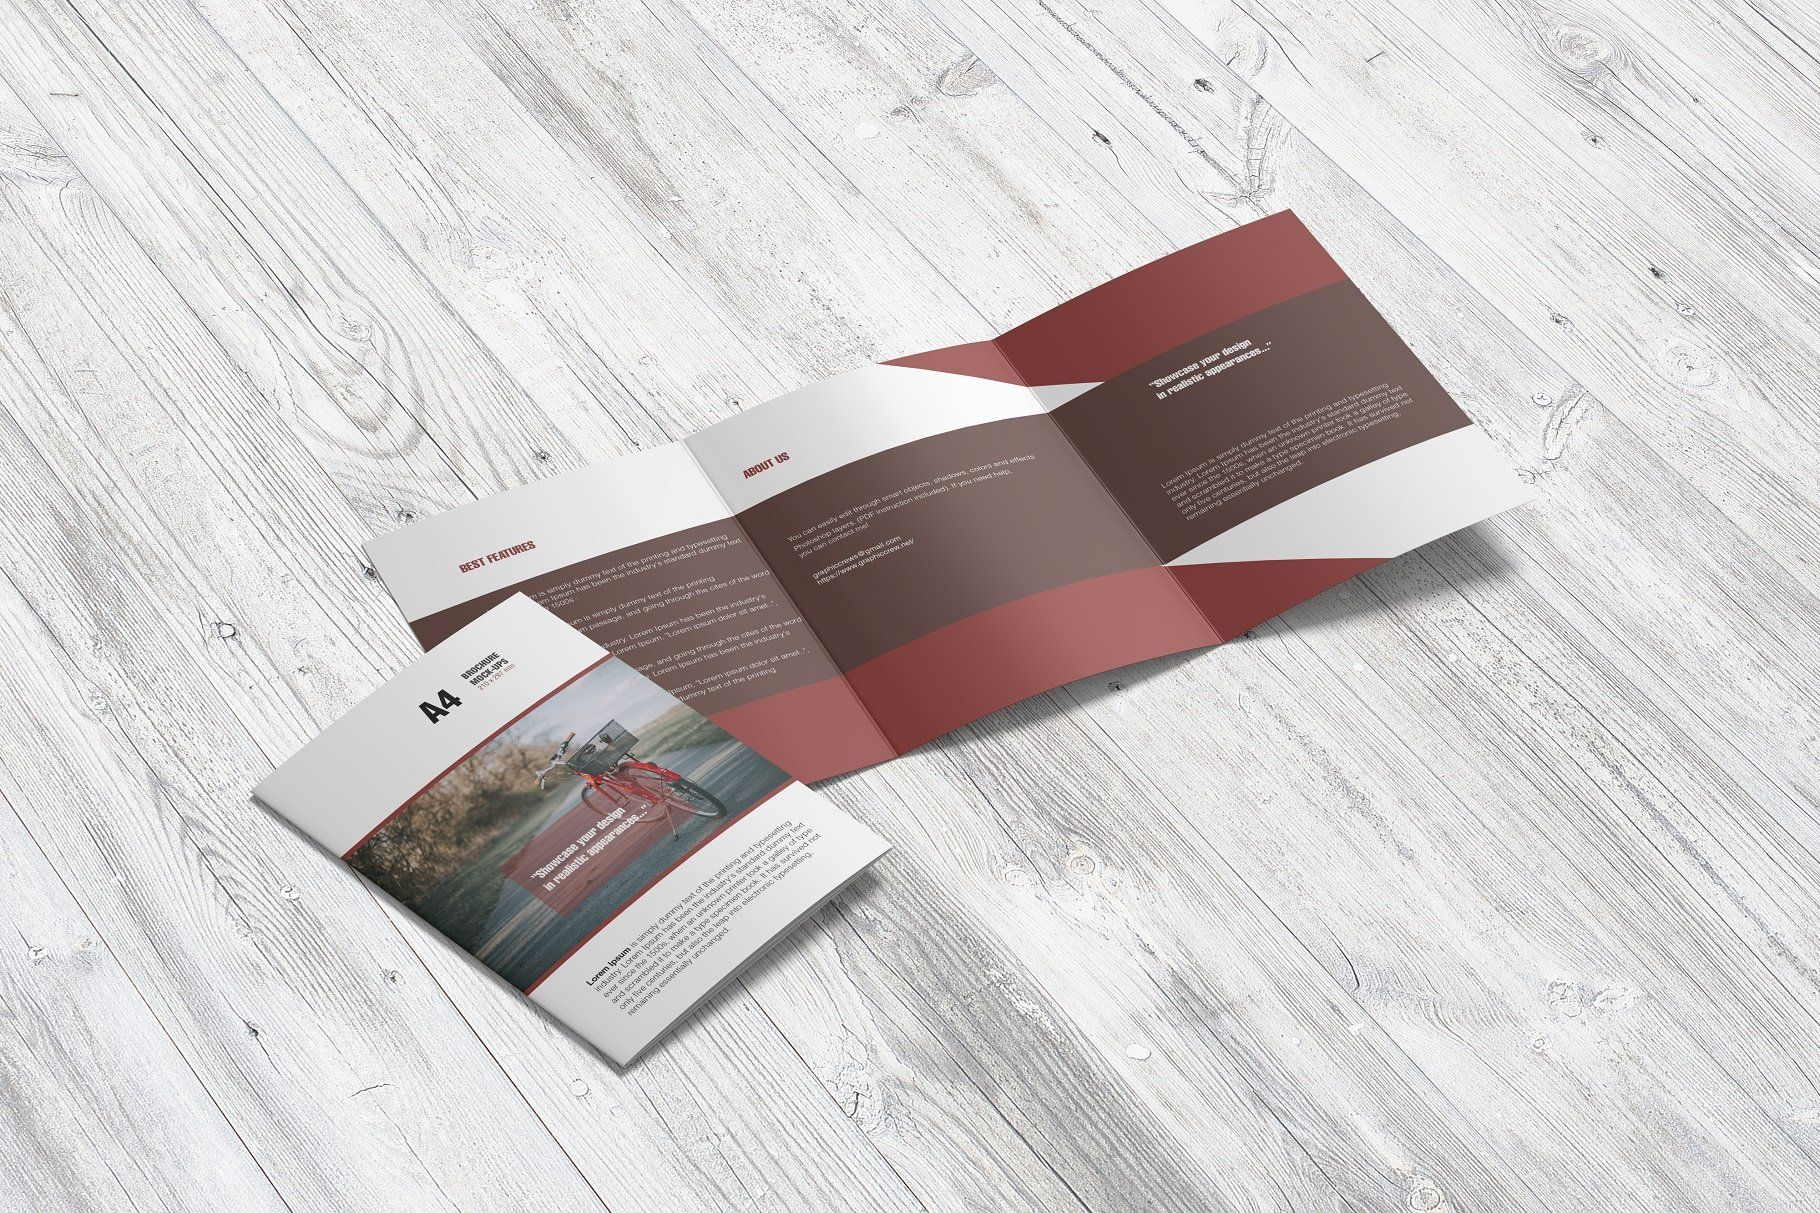 Download A4 Psd Magazine Booklet Mockup Vol 3 Yellowimages